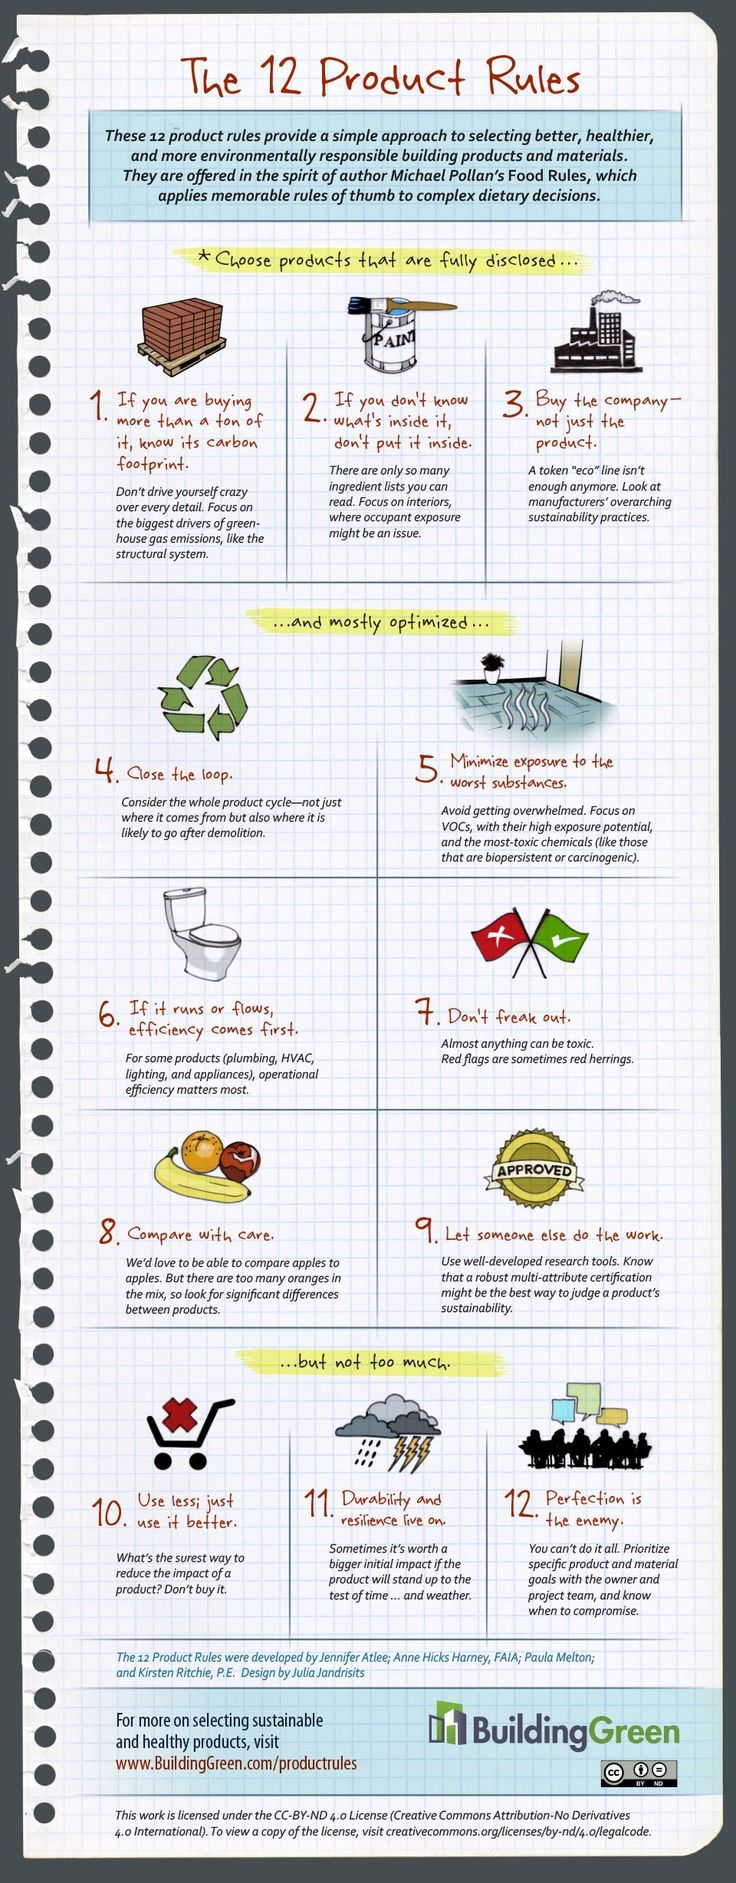 Use these 12 rules to make sure you're selecting sustainable building products & materials!